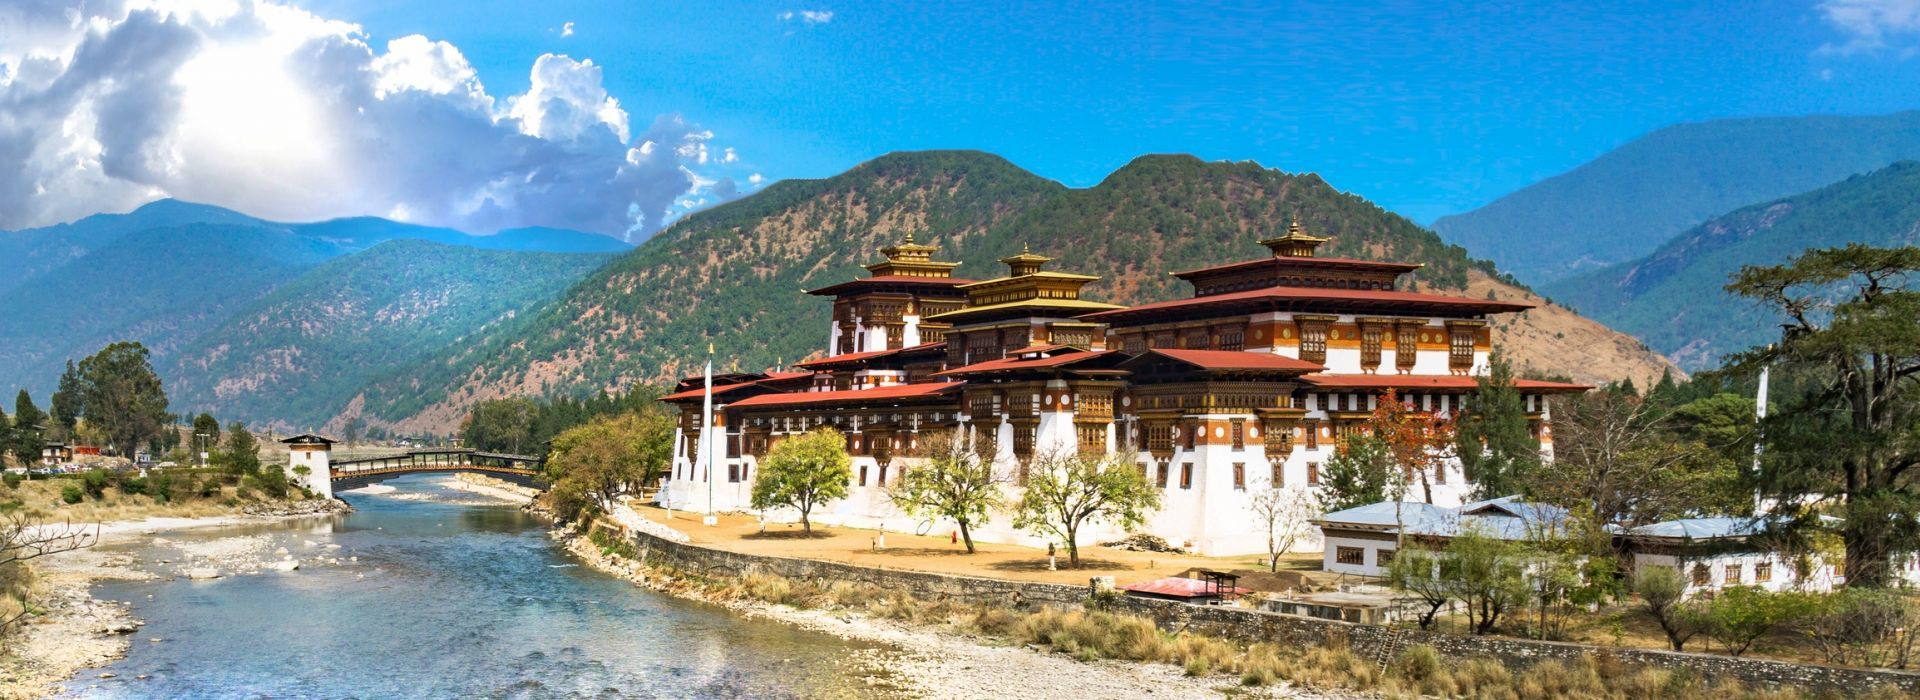 Art and architecture Tours in Bhutan